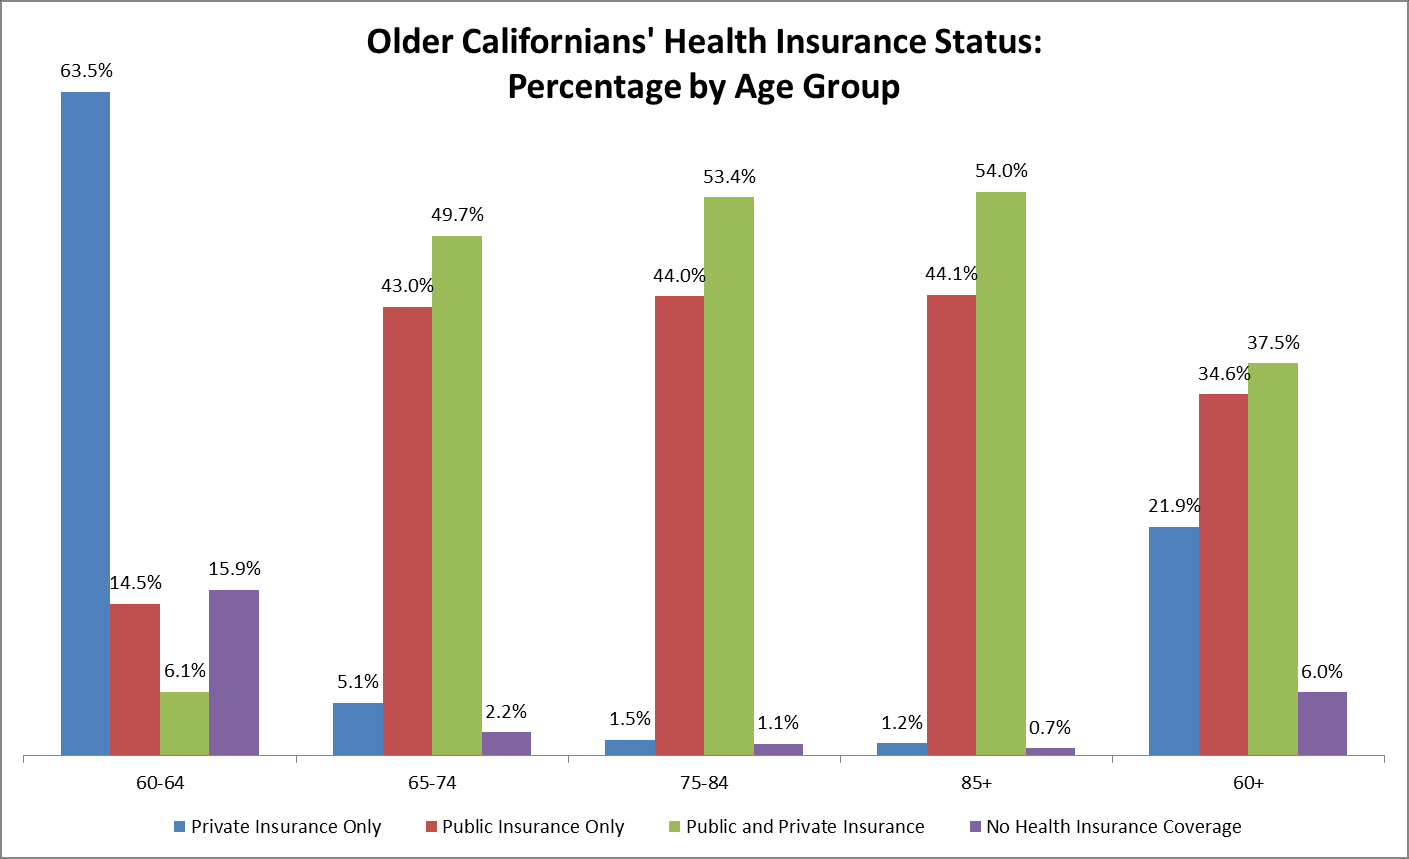 Health Insurance Status by Age Group: Estimates Health Insurance Status 60-64 65-74 75-84 85+ 60+ Private Insurance Only 1,219,616 120,647 20,612 7,080 1,367,955 Public Insurance Only 279,230